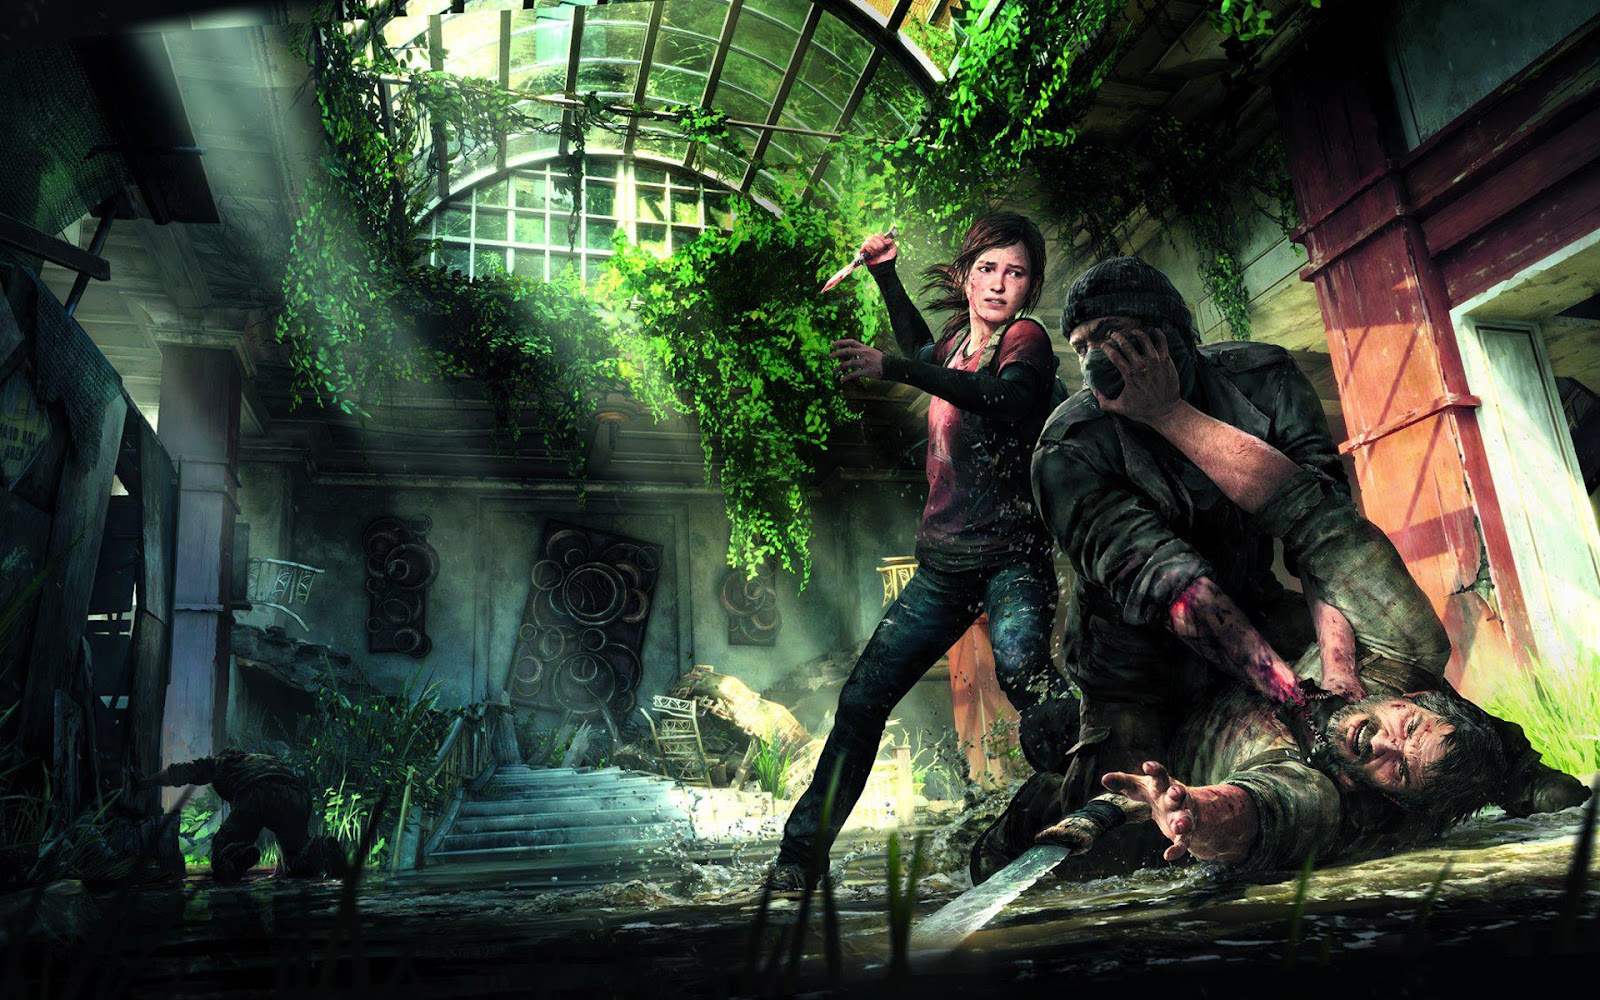 2518386-the_last_of_us_ps3_game-wide.jpg